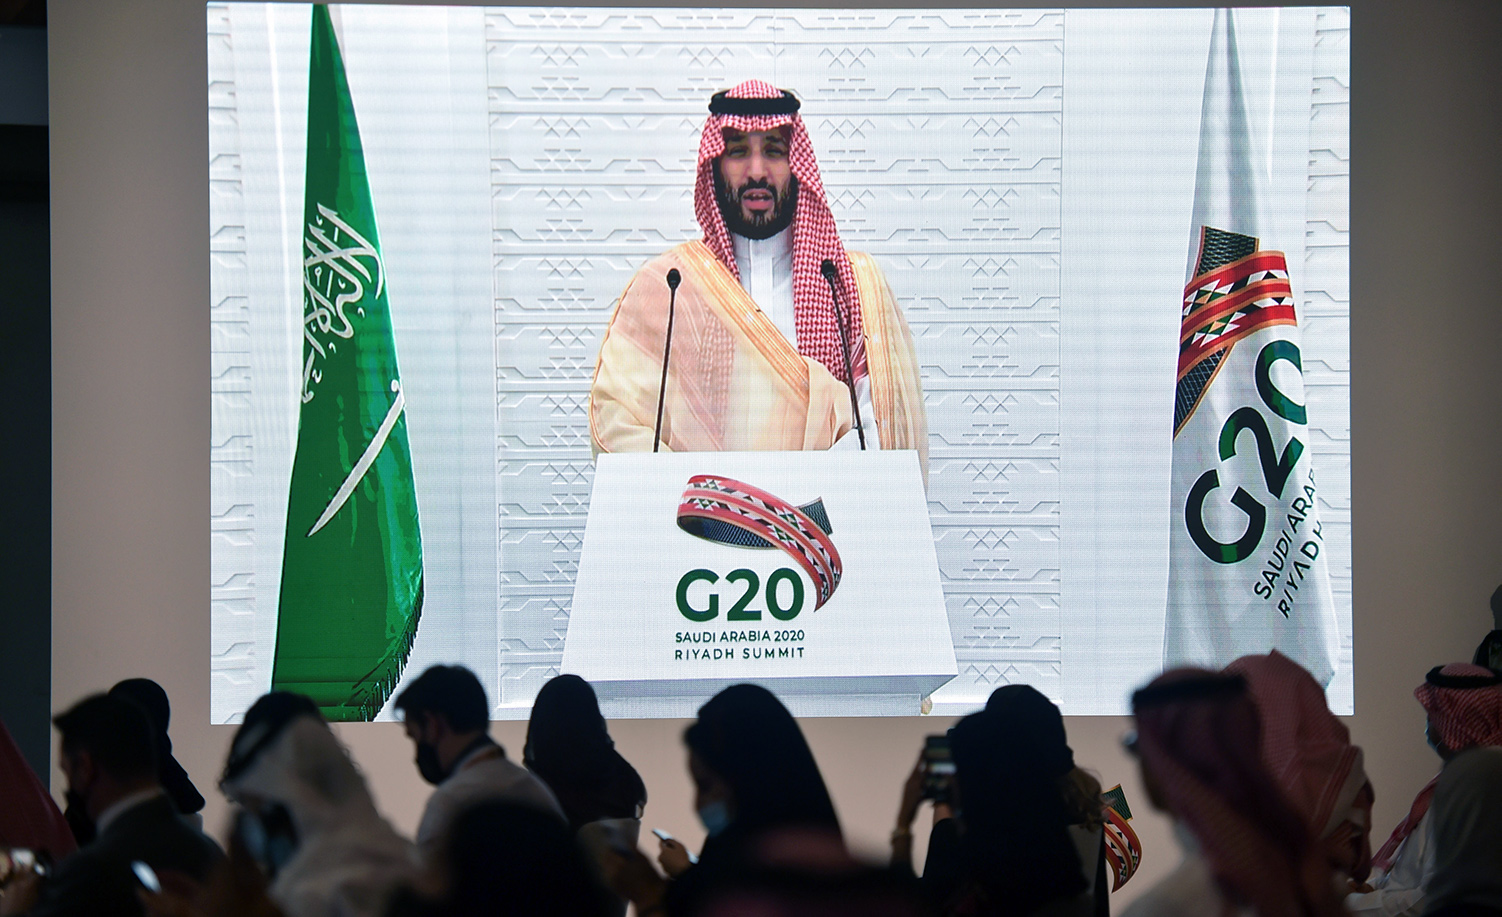 Saudi Crown Prince Mohammed bin Salman remotely addressing a press conference at the G20 Summit in Riyadh on November 22, 2020. FAYEZ NURELDINE/AFP via Getty Images.